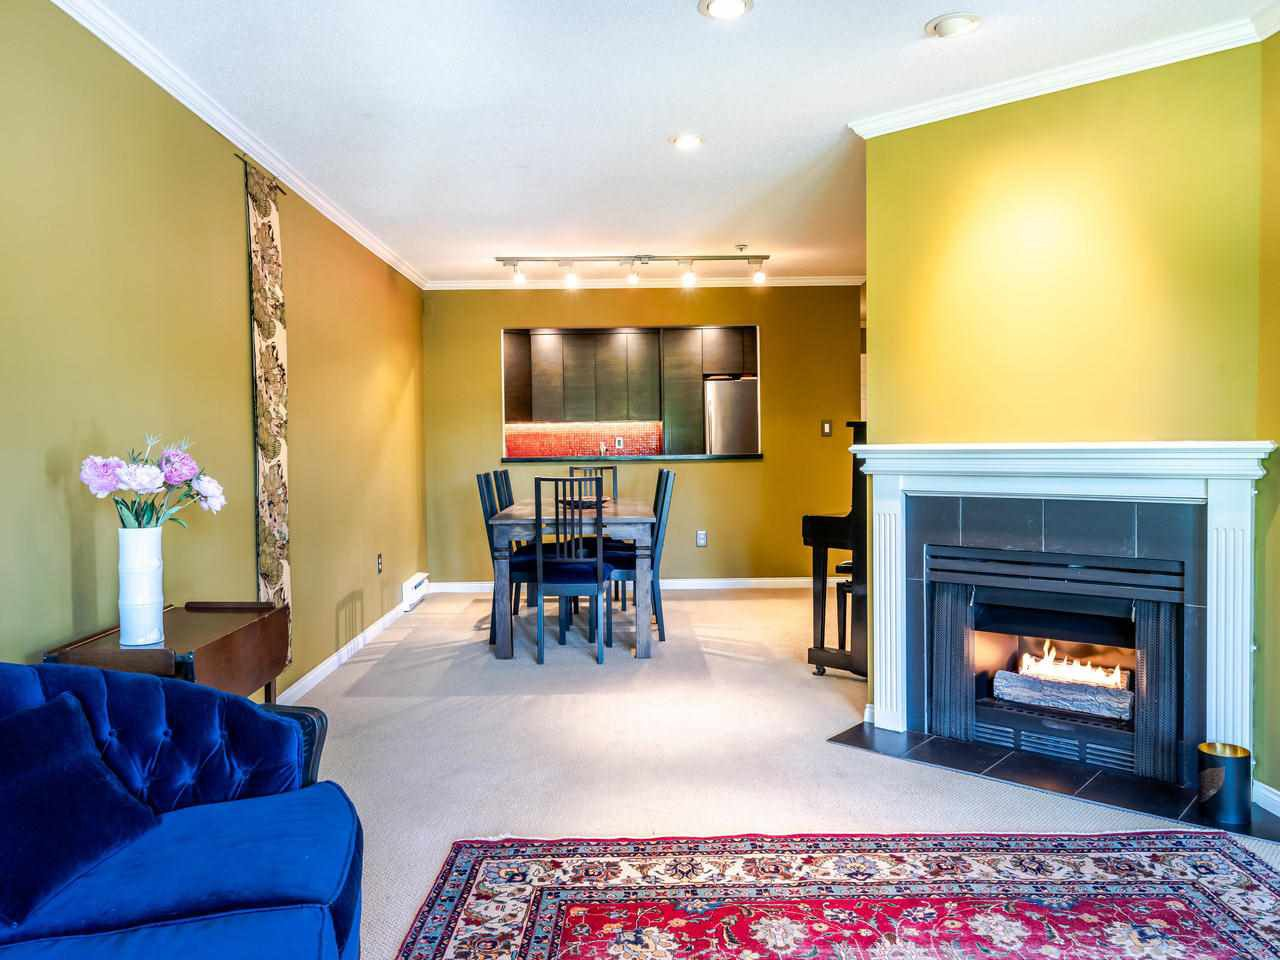 """Photo 11: Photos: 303 2288 W 12TH Avenue in Vancouver: Kitsilano Condo for sale in """"Connaught Point"""" (Vancouver West)  : MLS®# R2494985"""